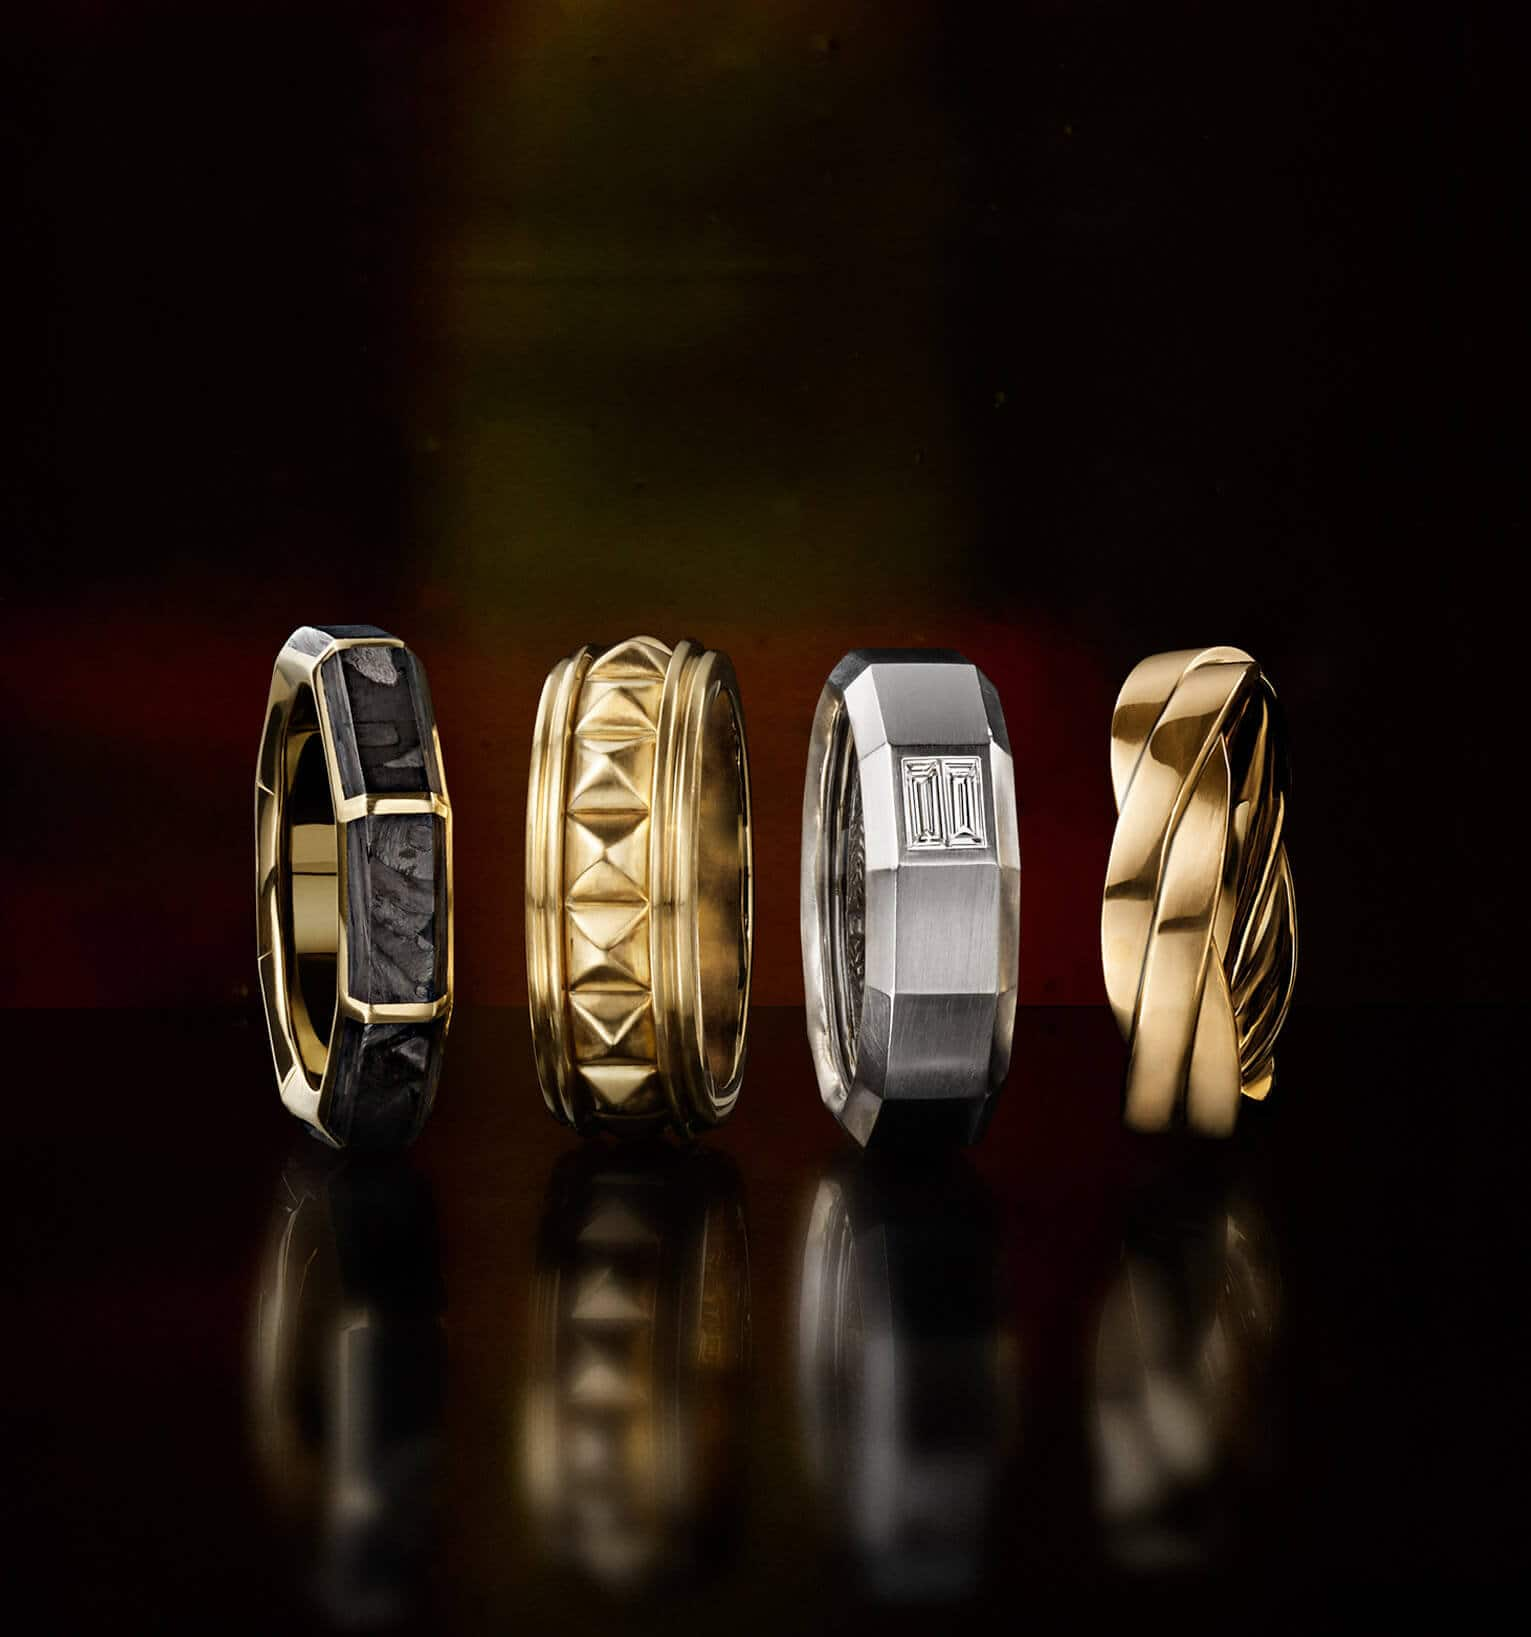 A color photo shows a horizontal row of four David Yurman men's bands—all placed on a black reflective surface. Three of the men's rings are crafted from 18K yellow gold with or without forged carbon. One ring is crafted from 18K white gold with white diamonds.